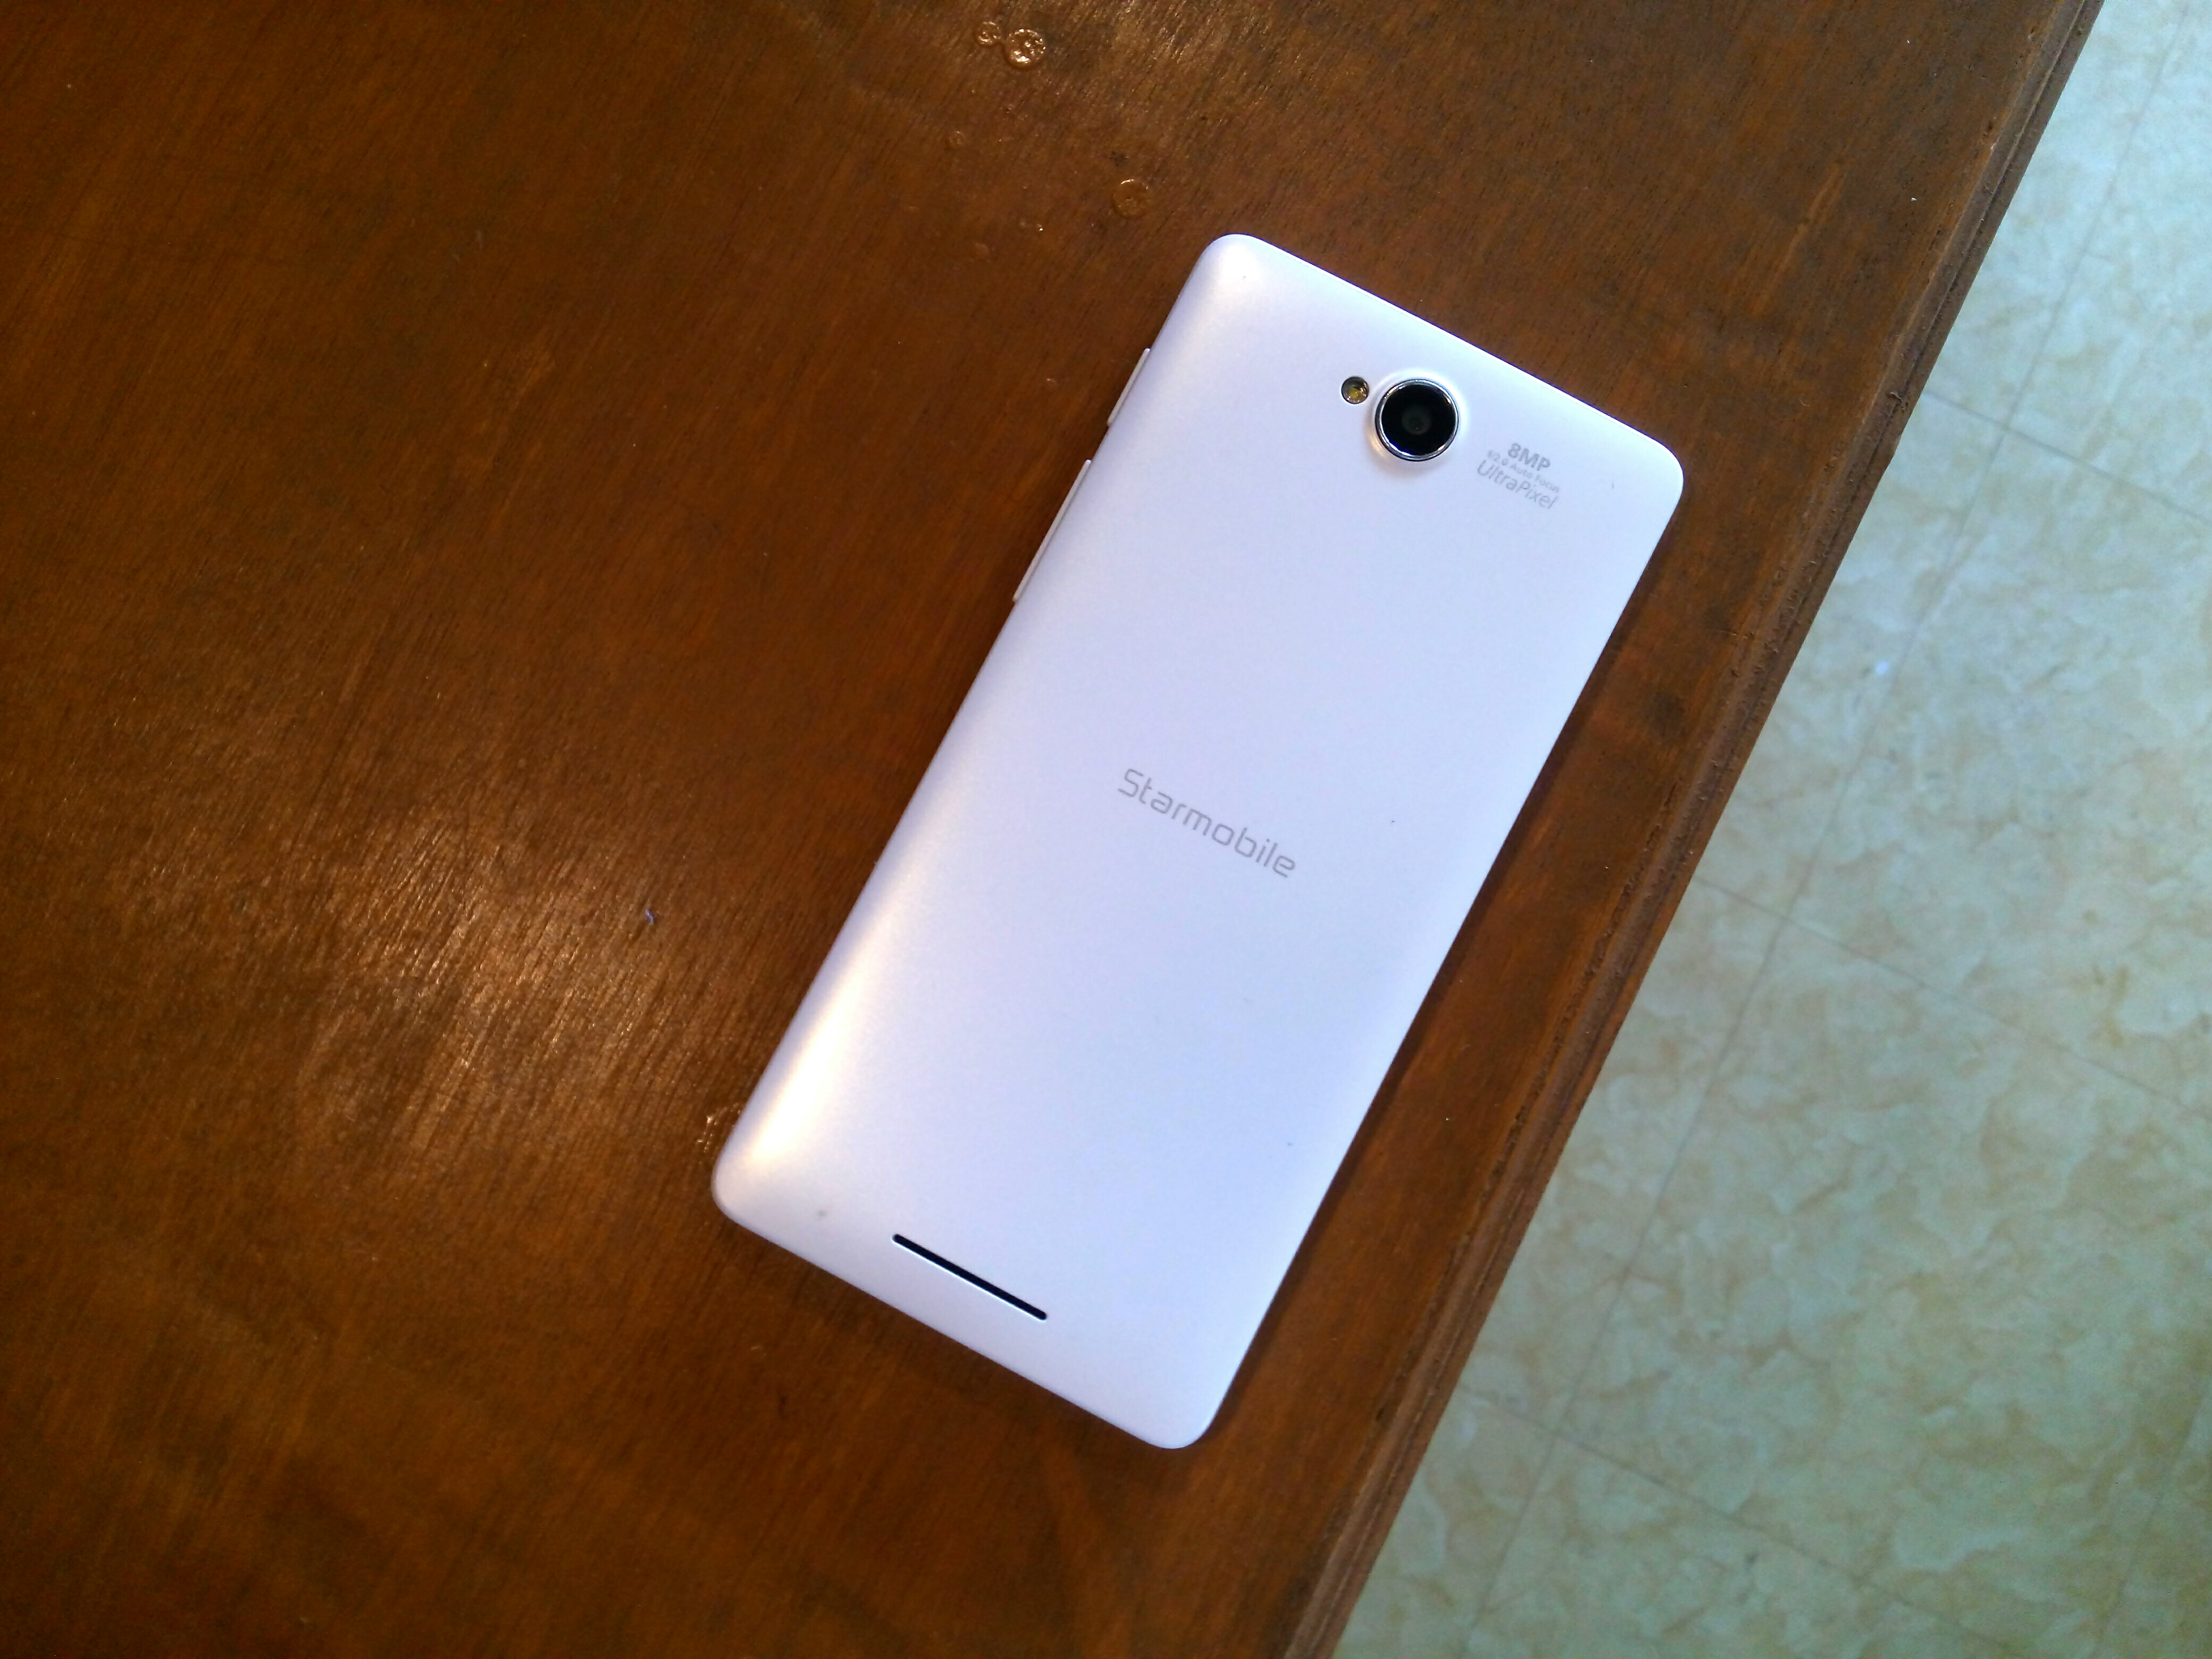 Starmobile Up Snap Hands On Review - Filipino Tech Addict